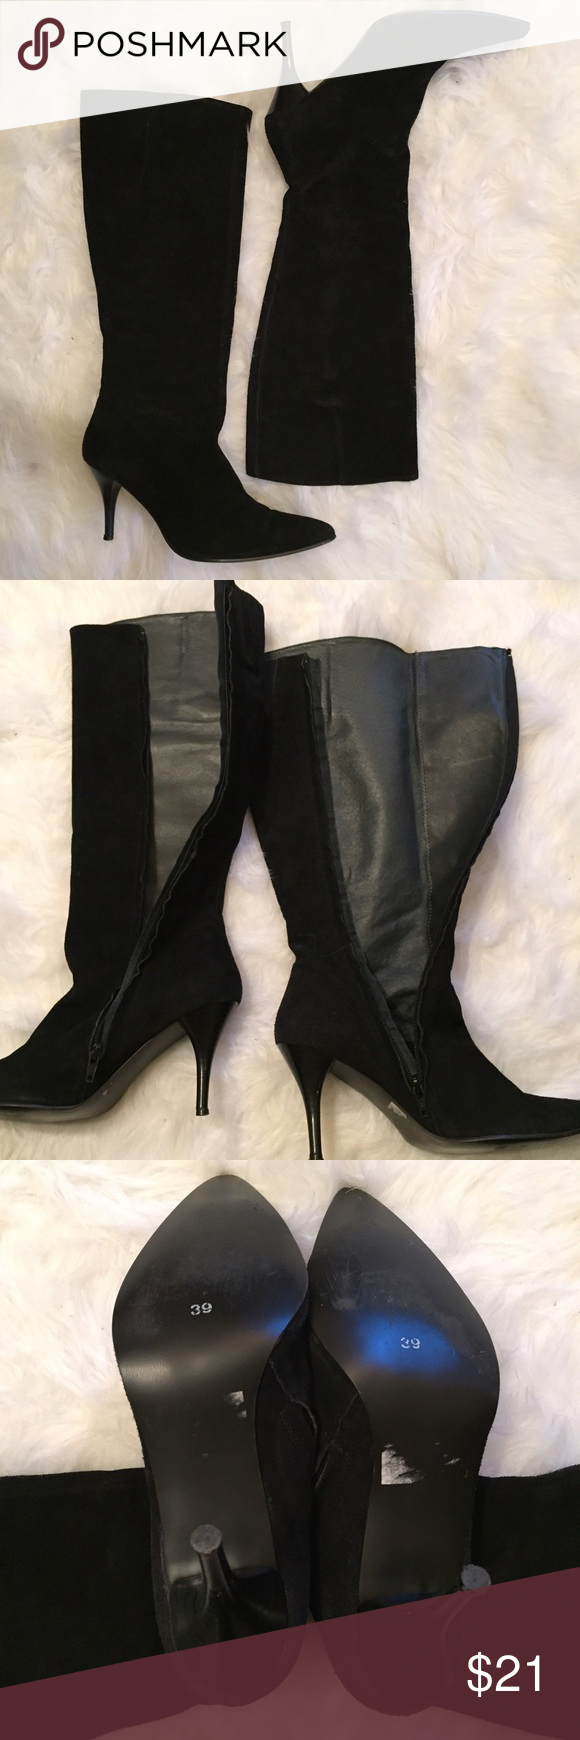 Laura Clement Suede knee-high pointy boots Excellent condition, boots come with original tissue paper. Labeled as size 39 but I'm an 8 and the fit is great! Laura Clement  Shoes Heeled Boots